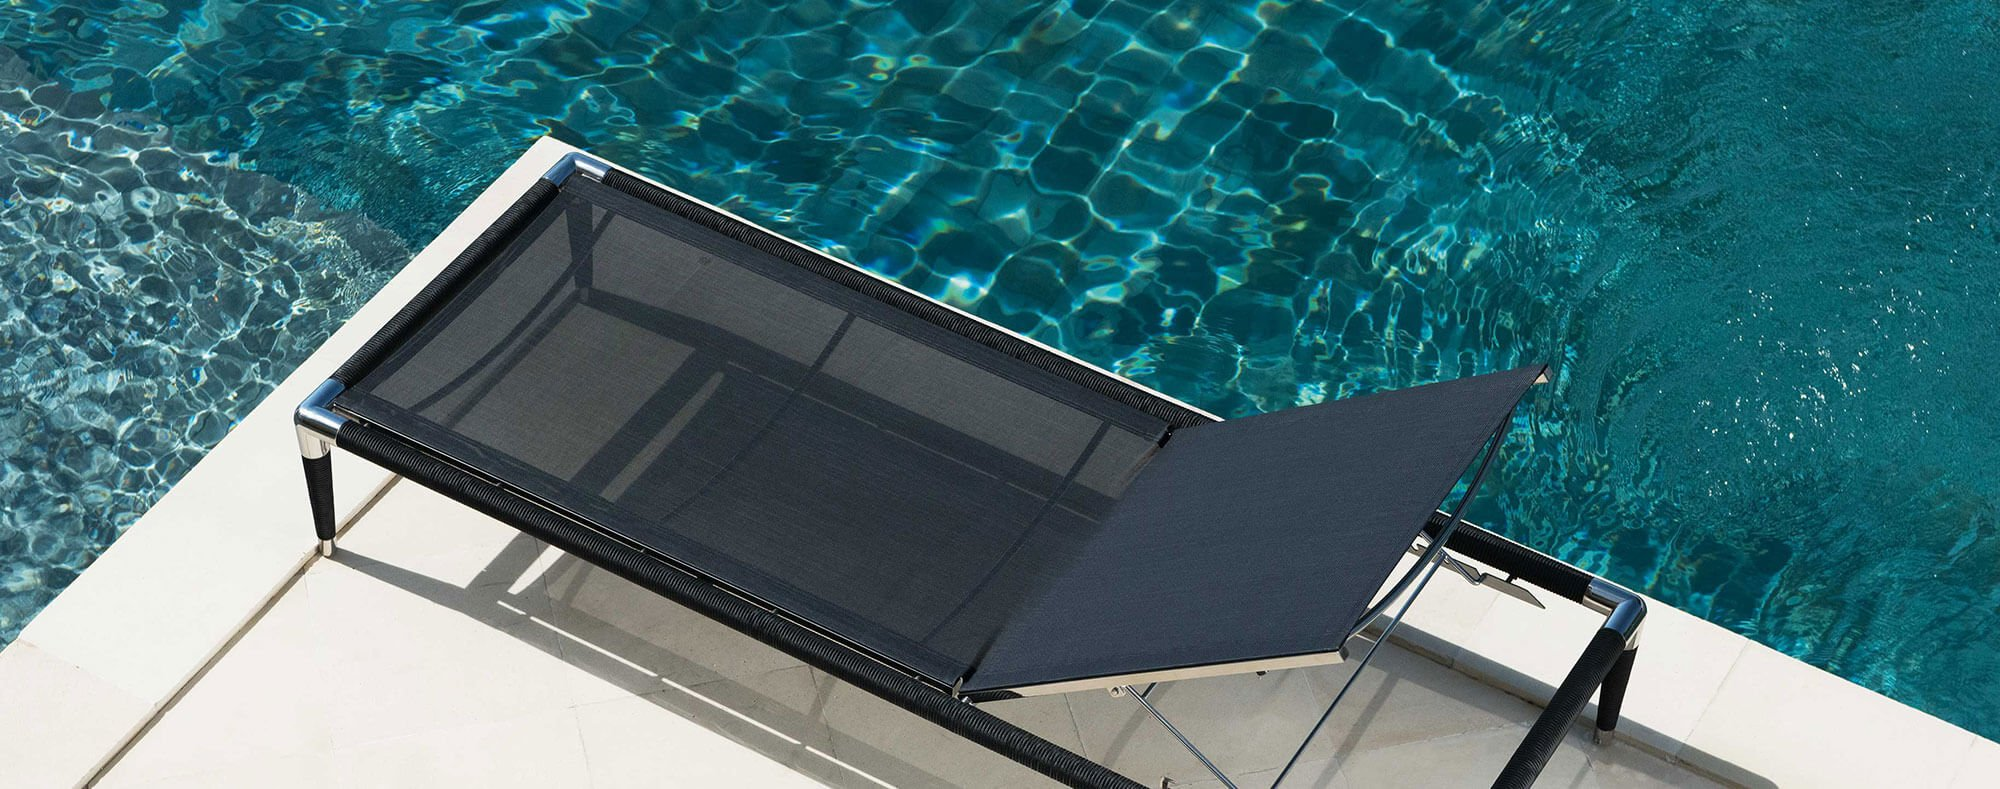 Luxury Marina Lounger, Electro-polished Stainless Steel sun lounger